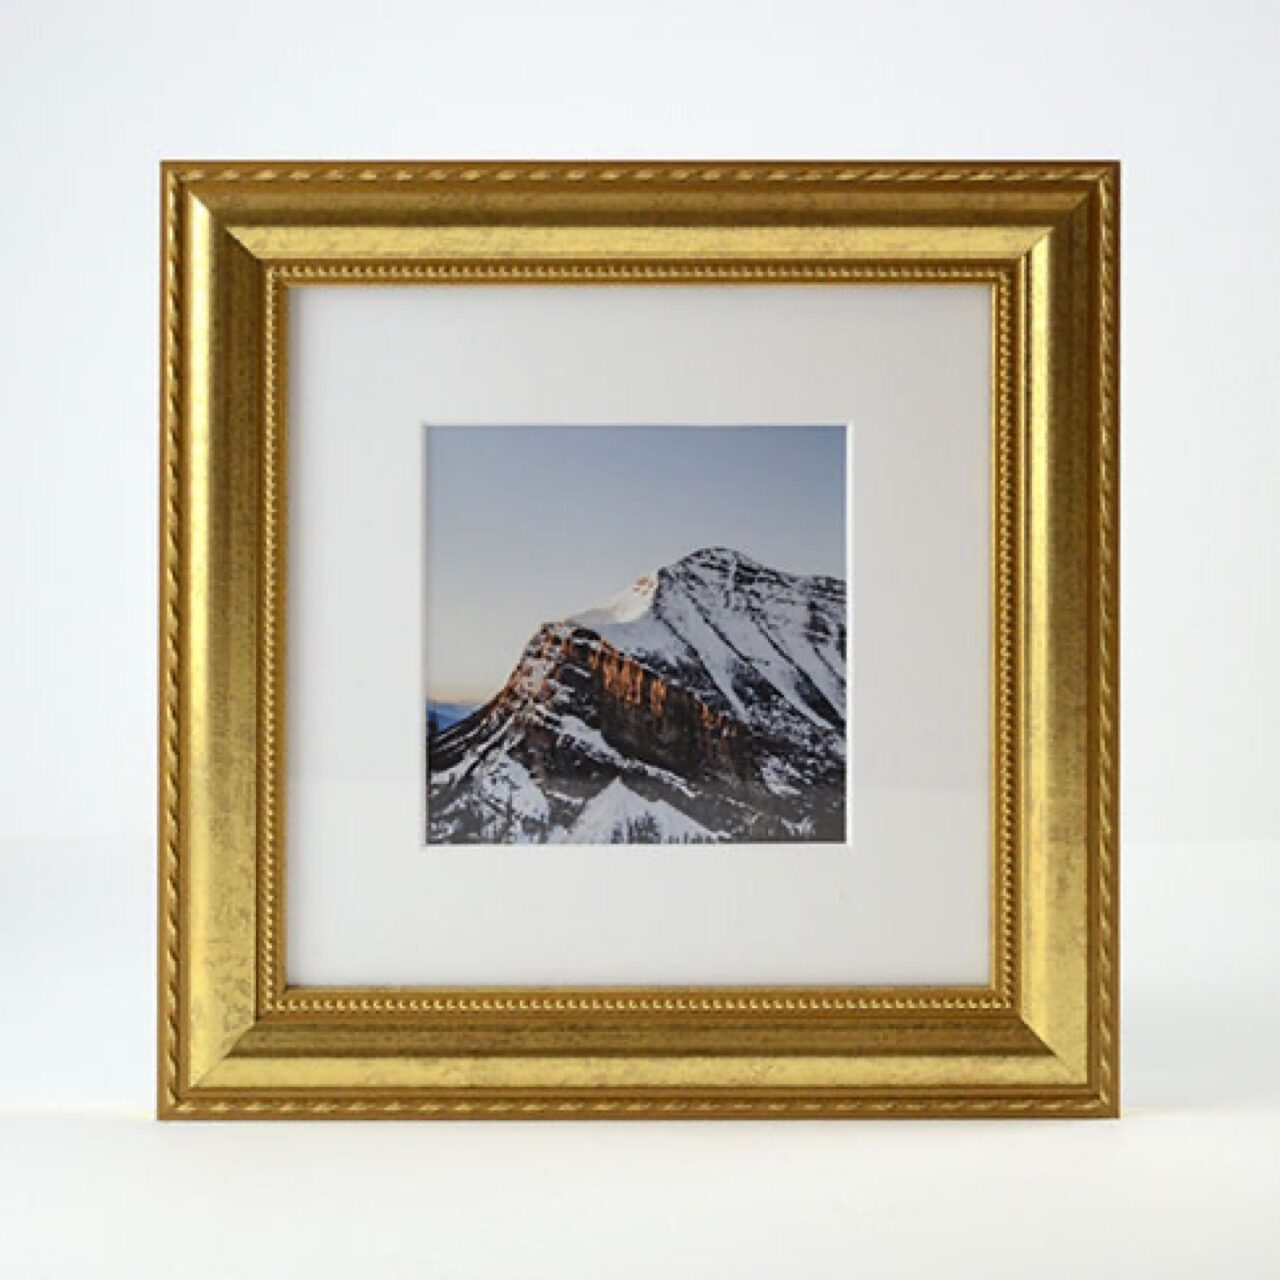 Granby frame style